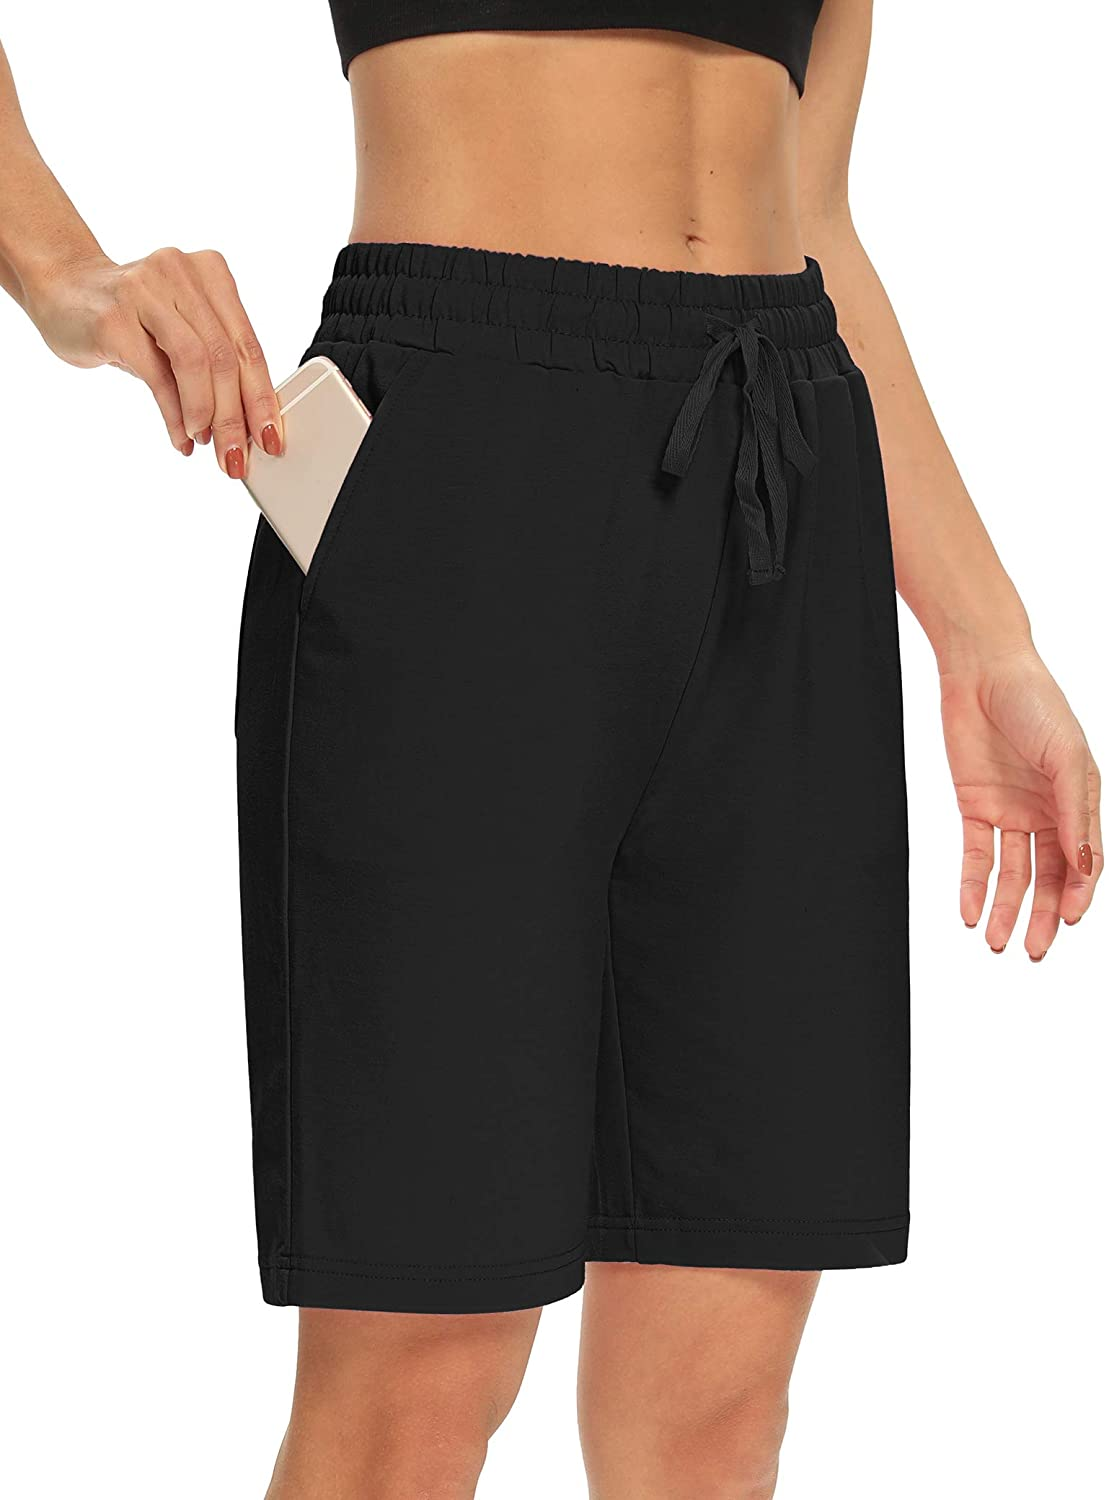 DIBAOLONG Womens Yoga Shorts Outlet ☆ Free OFFer Shipping Loose Drawstring Lounge Bermu Comfy